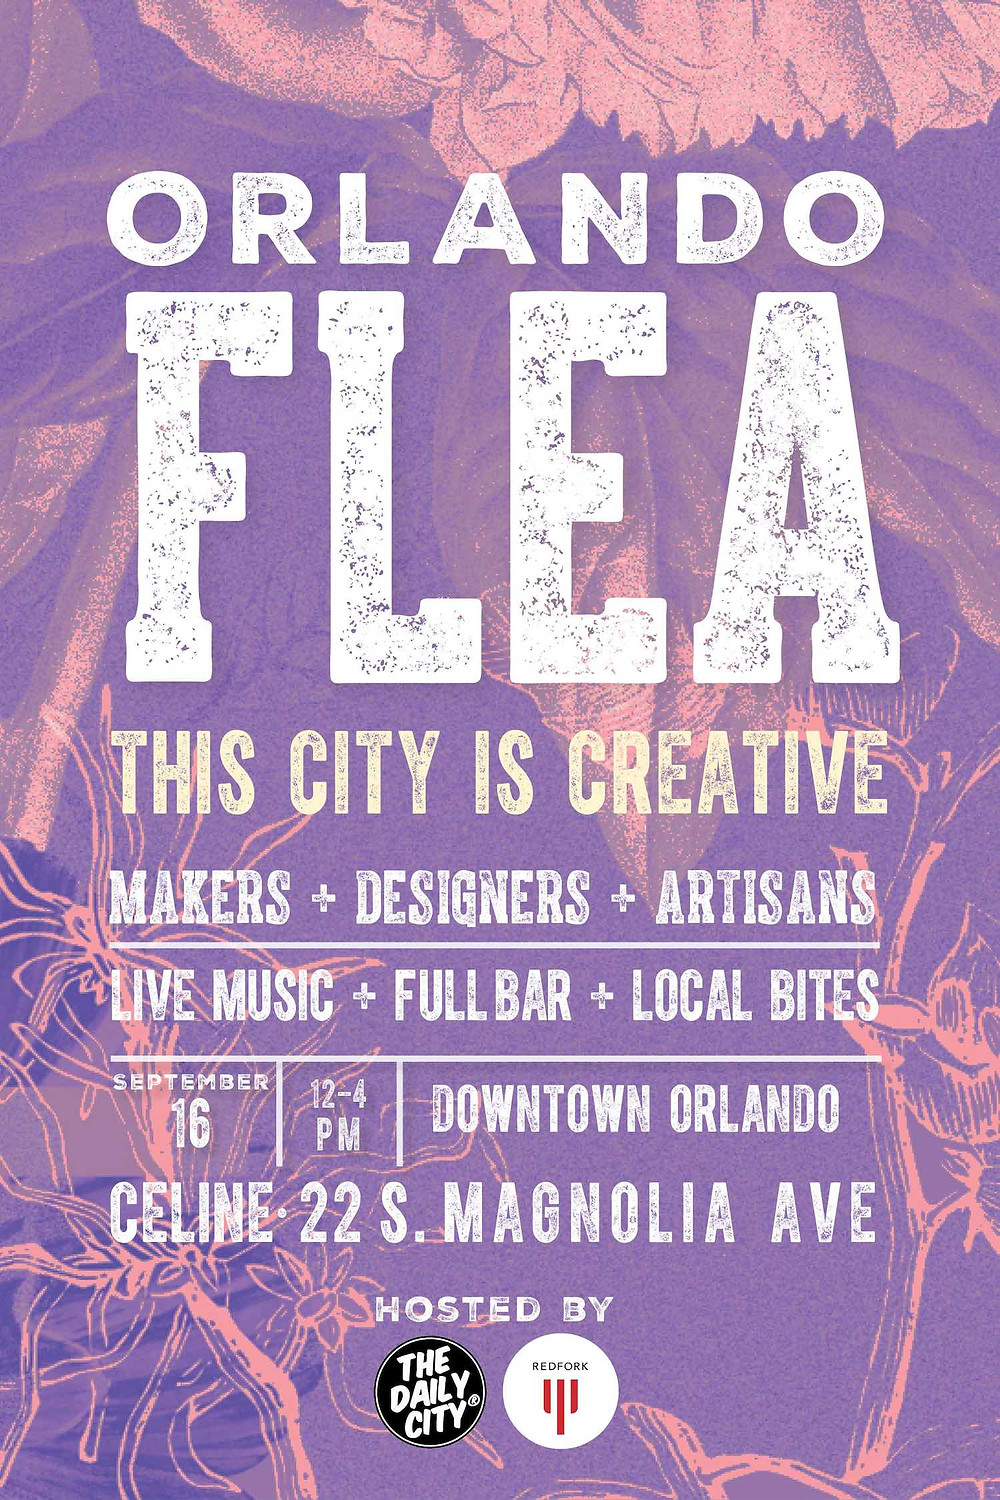 Orlando Flea is Sunday September 16, 2018 12-4pm at Celine Orlando in downtown Orlando.